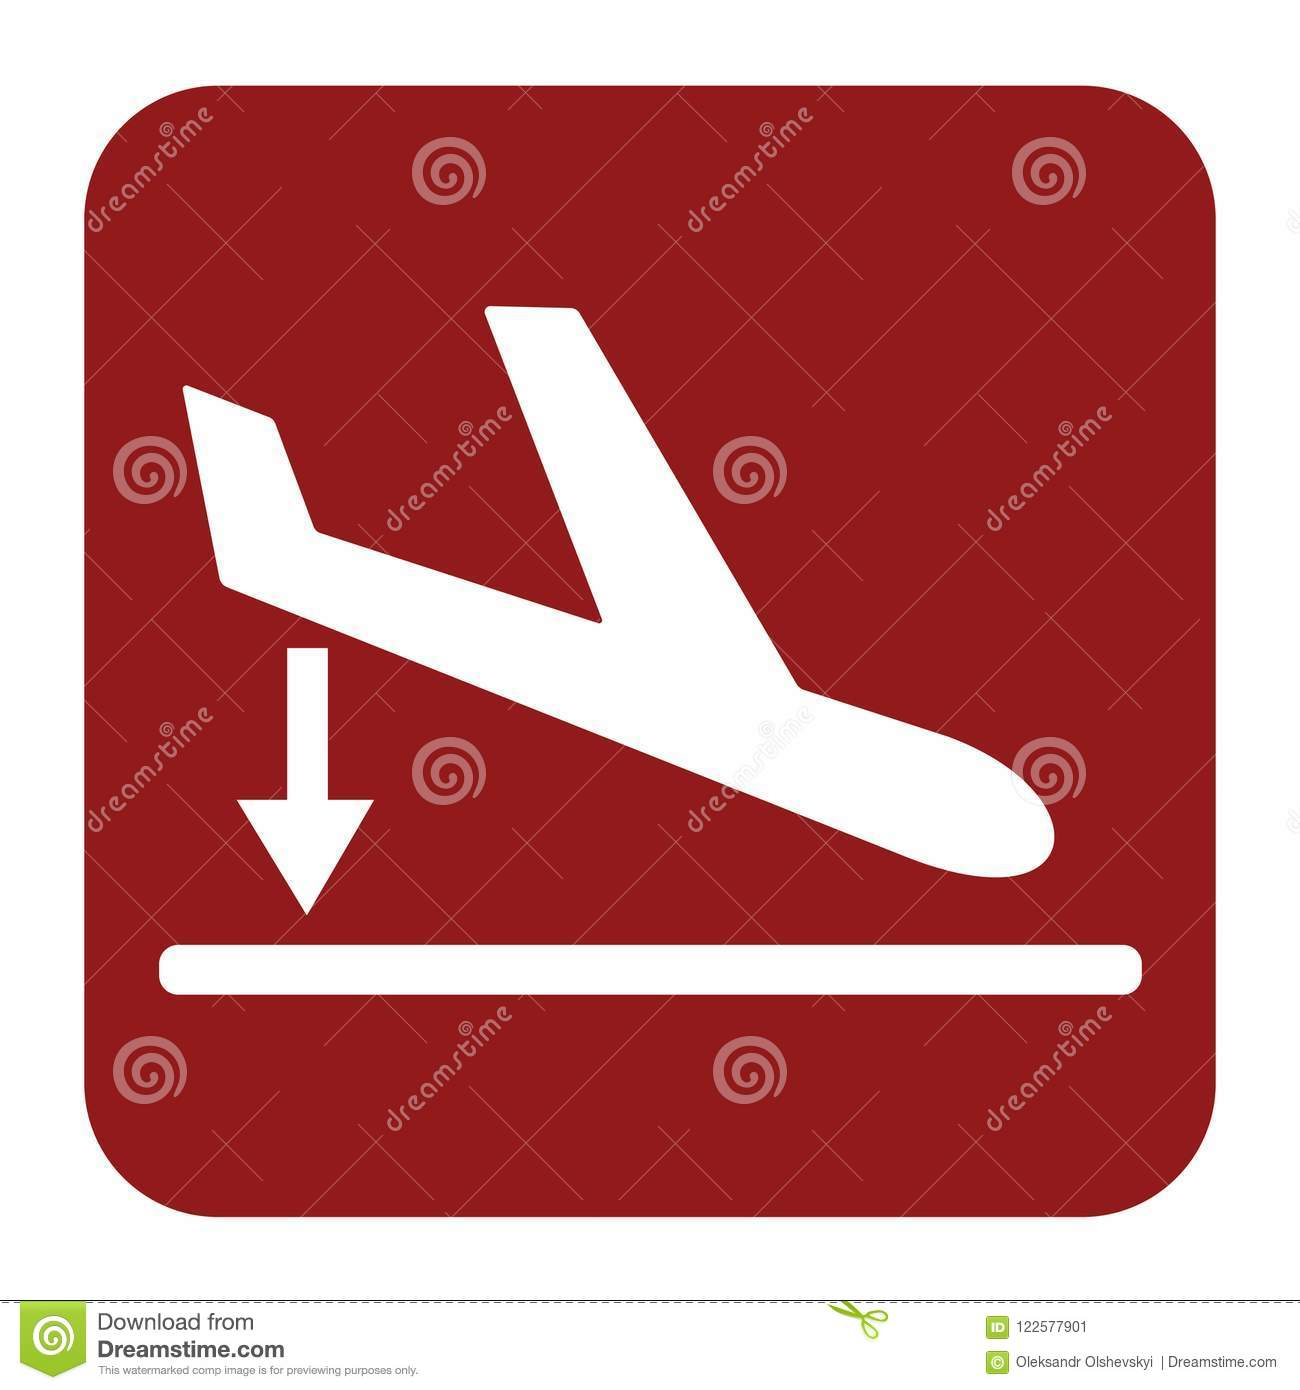 Departure Landing Plane Icon Simple Stock Vector Illustration Of Passenger Airline 122577901